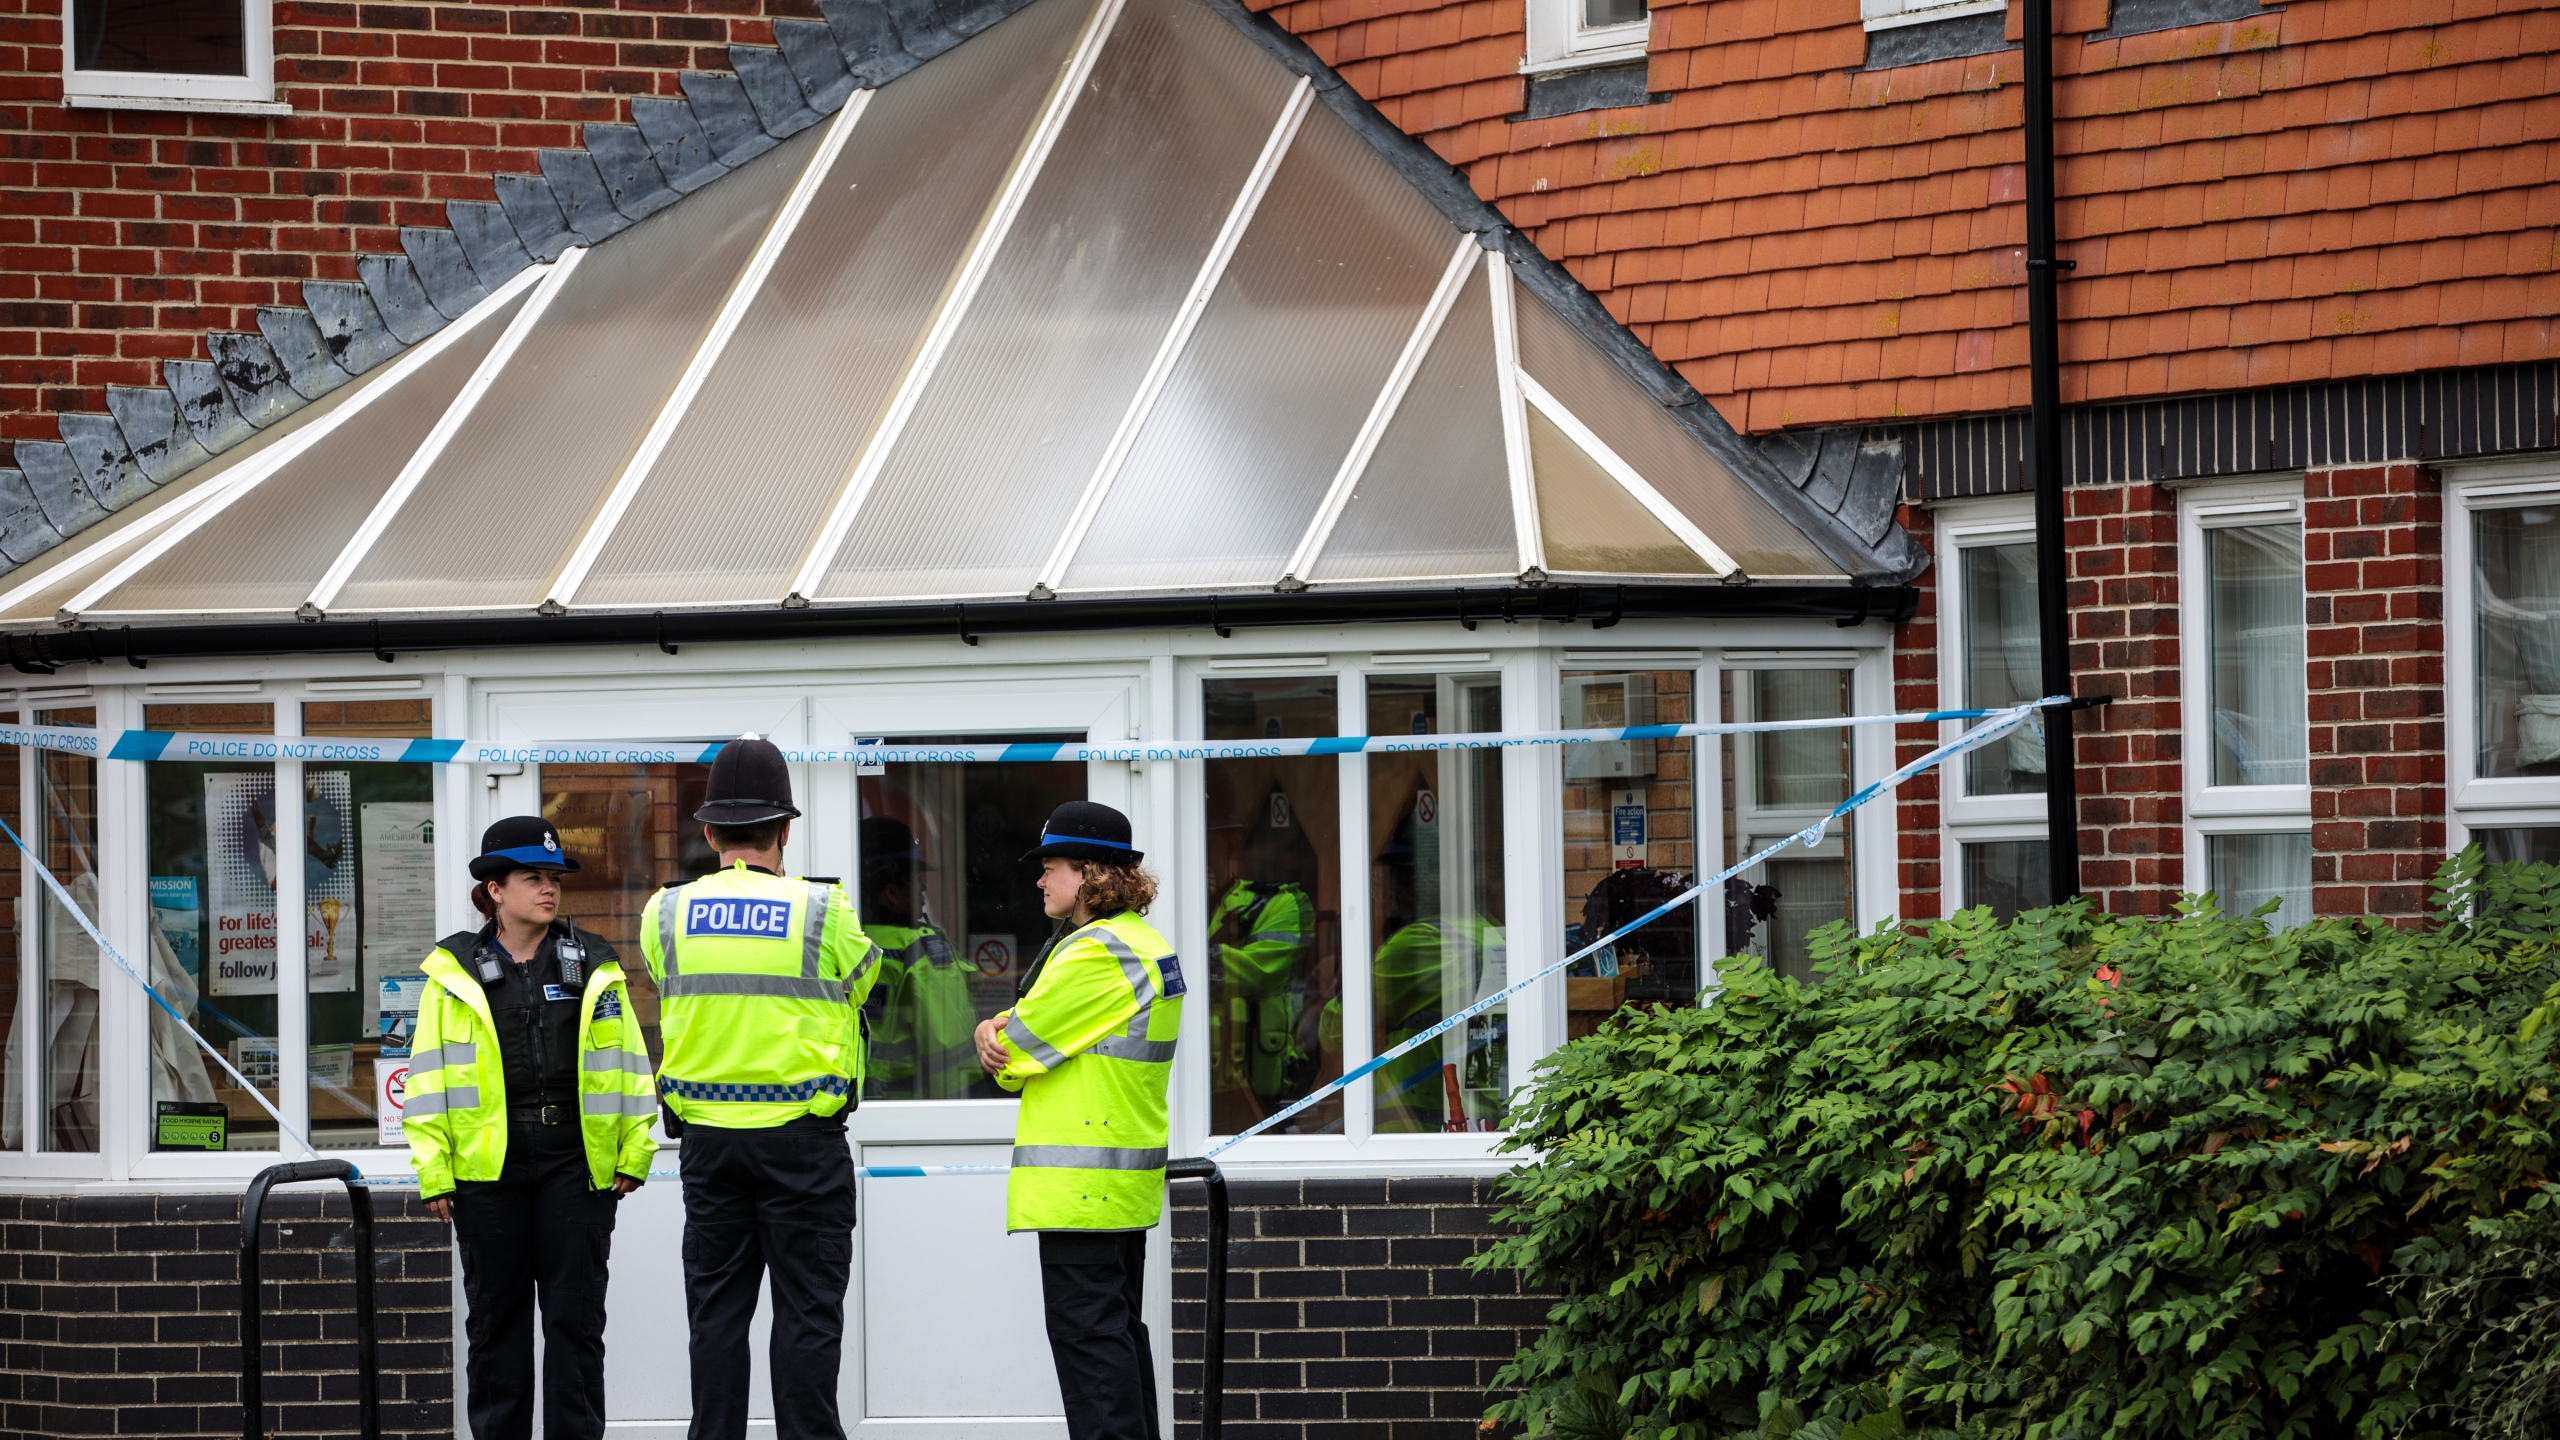 Officials convene at the scene outside Amesbury Baptist Centre as Wiltshire Police declare a major incident after a man and woman were exposed to an unknown substance on July 4, 2018, in Amesbury, England. (Credit: Jack Taylor / Getty Images)